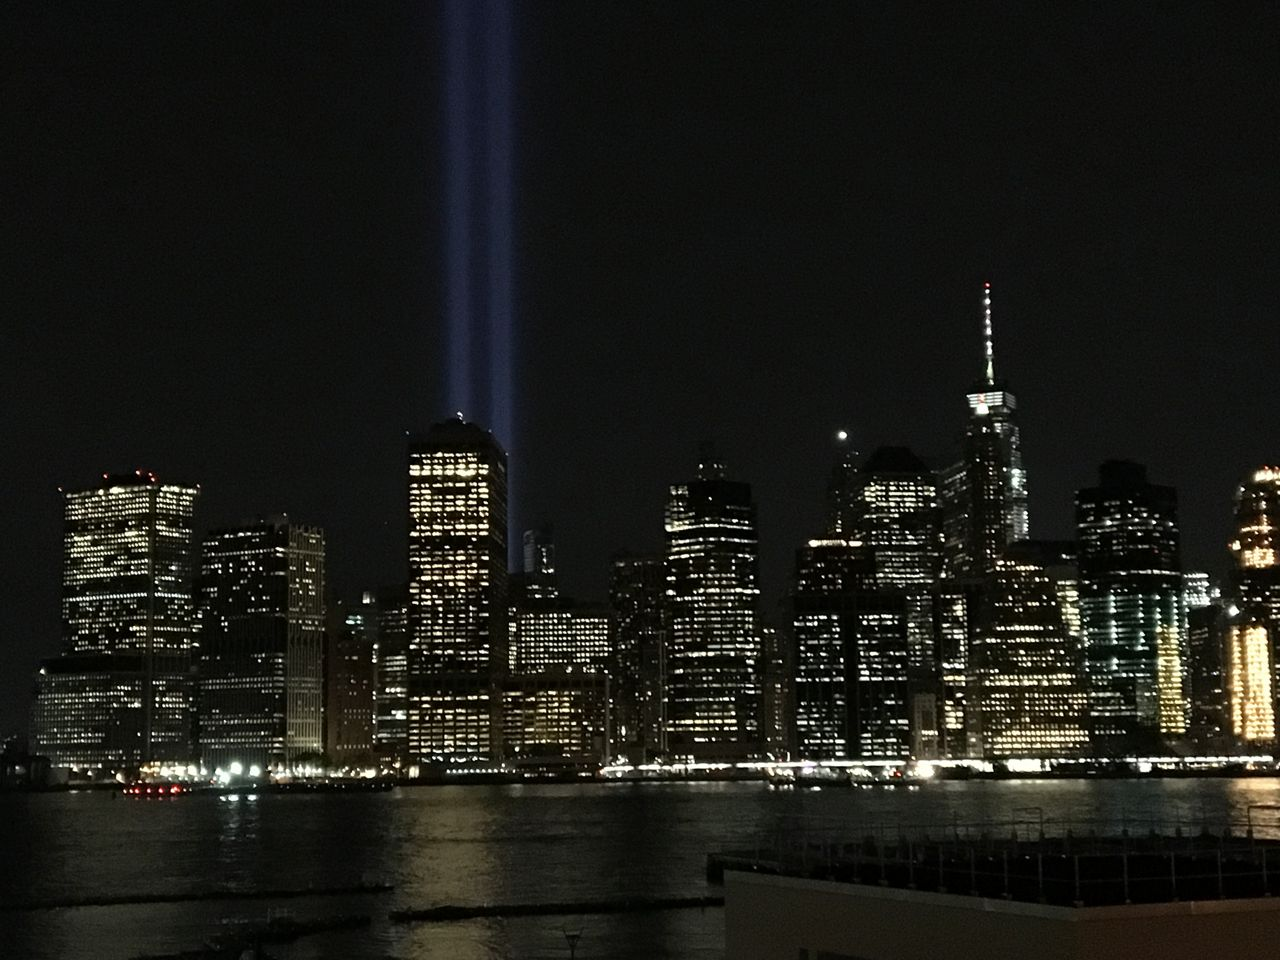 Tribute in Light honors victims of September 11th attacks